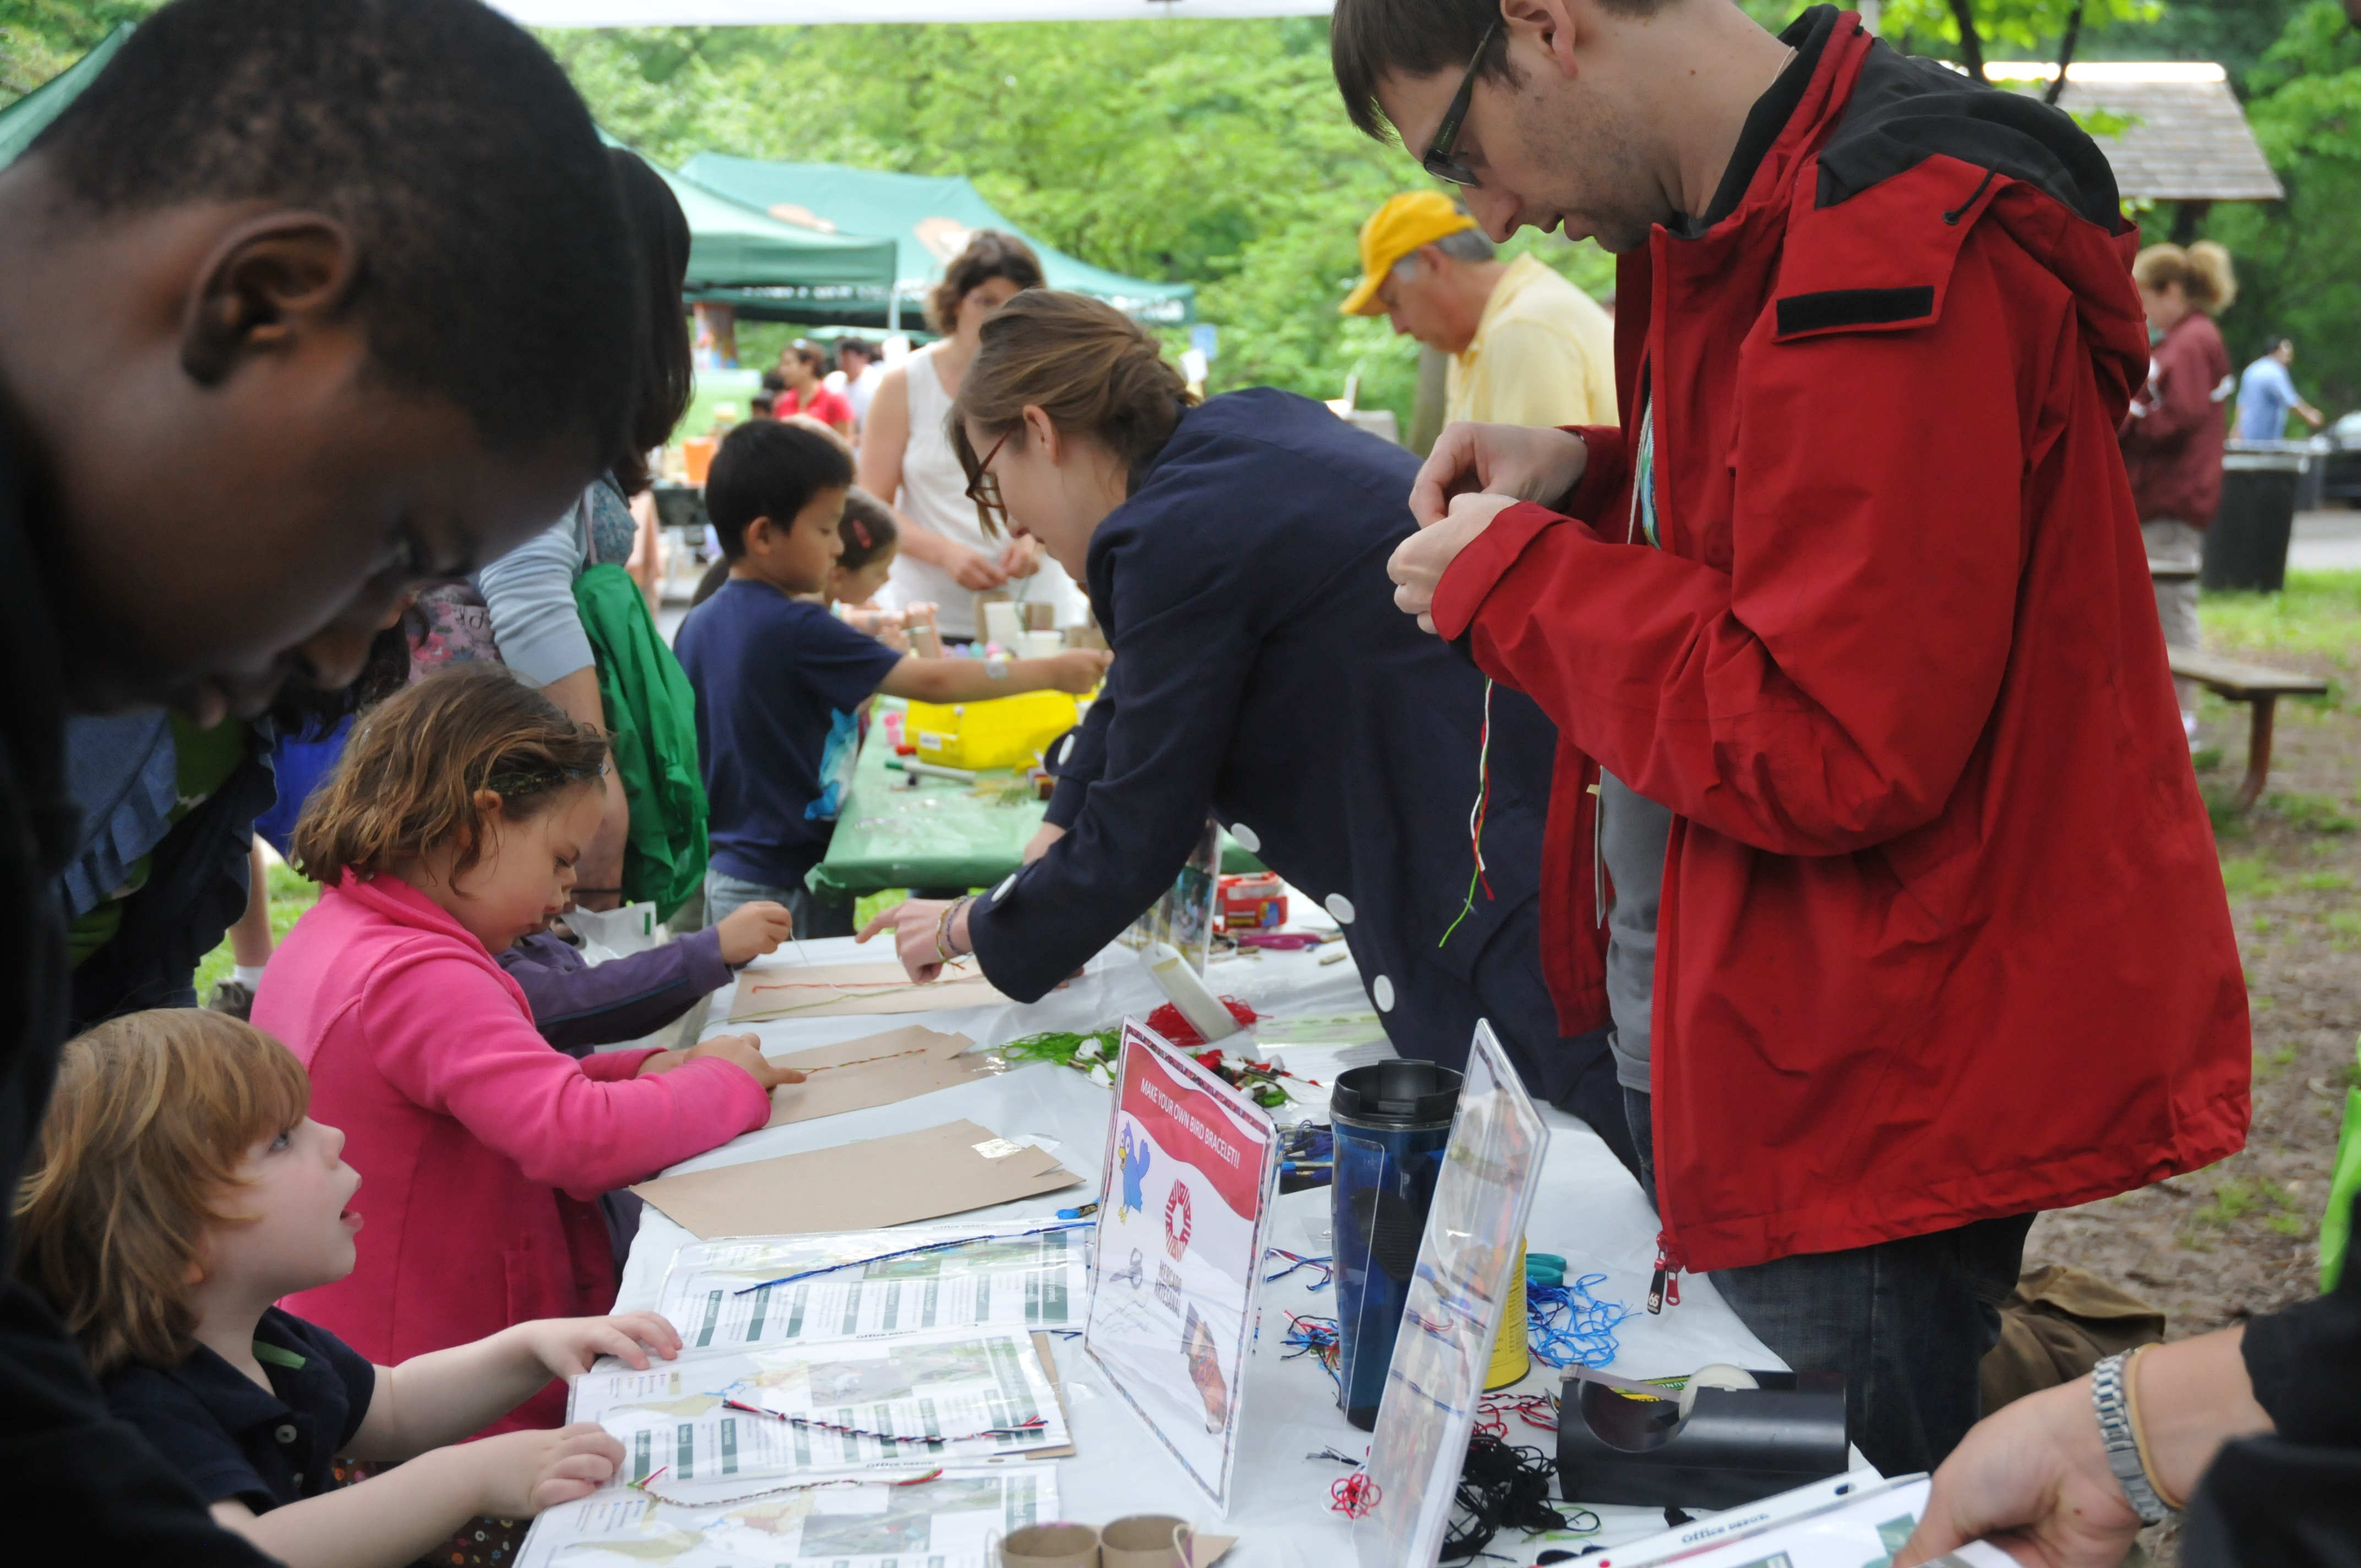 International Migratory Bird Day visitors gather around craft tables